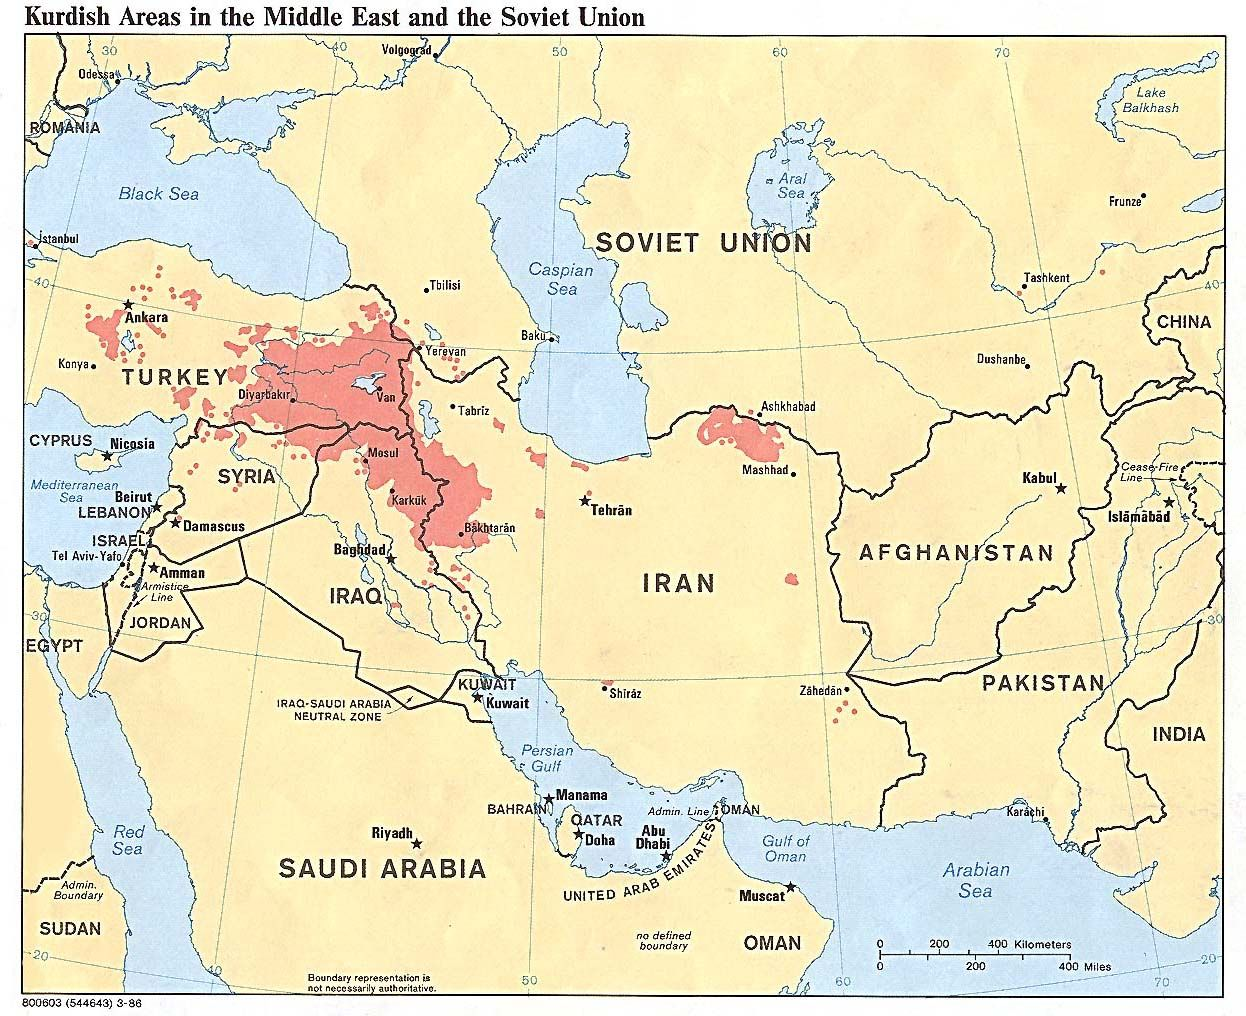 Imagemap kurdish inhabited areas in the middle east and the imagemap kurdish inhabited areas in the middle east and the soviet union gumiabroncs Images